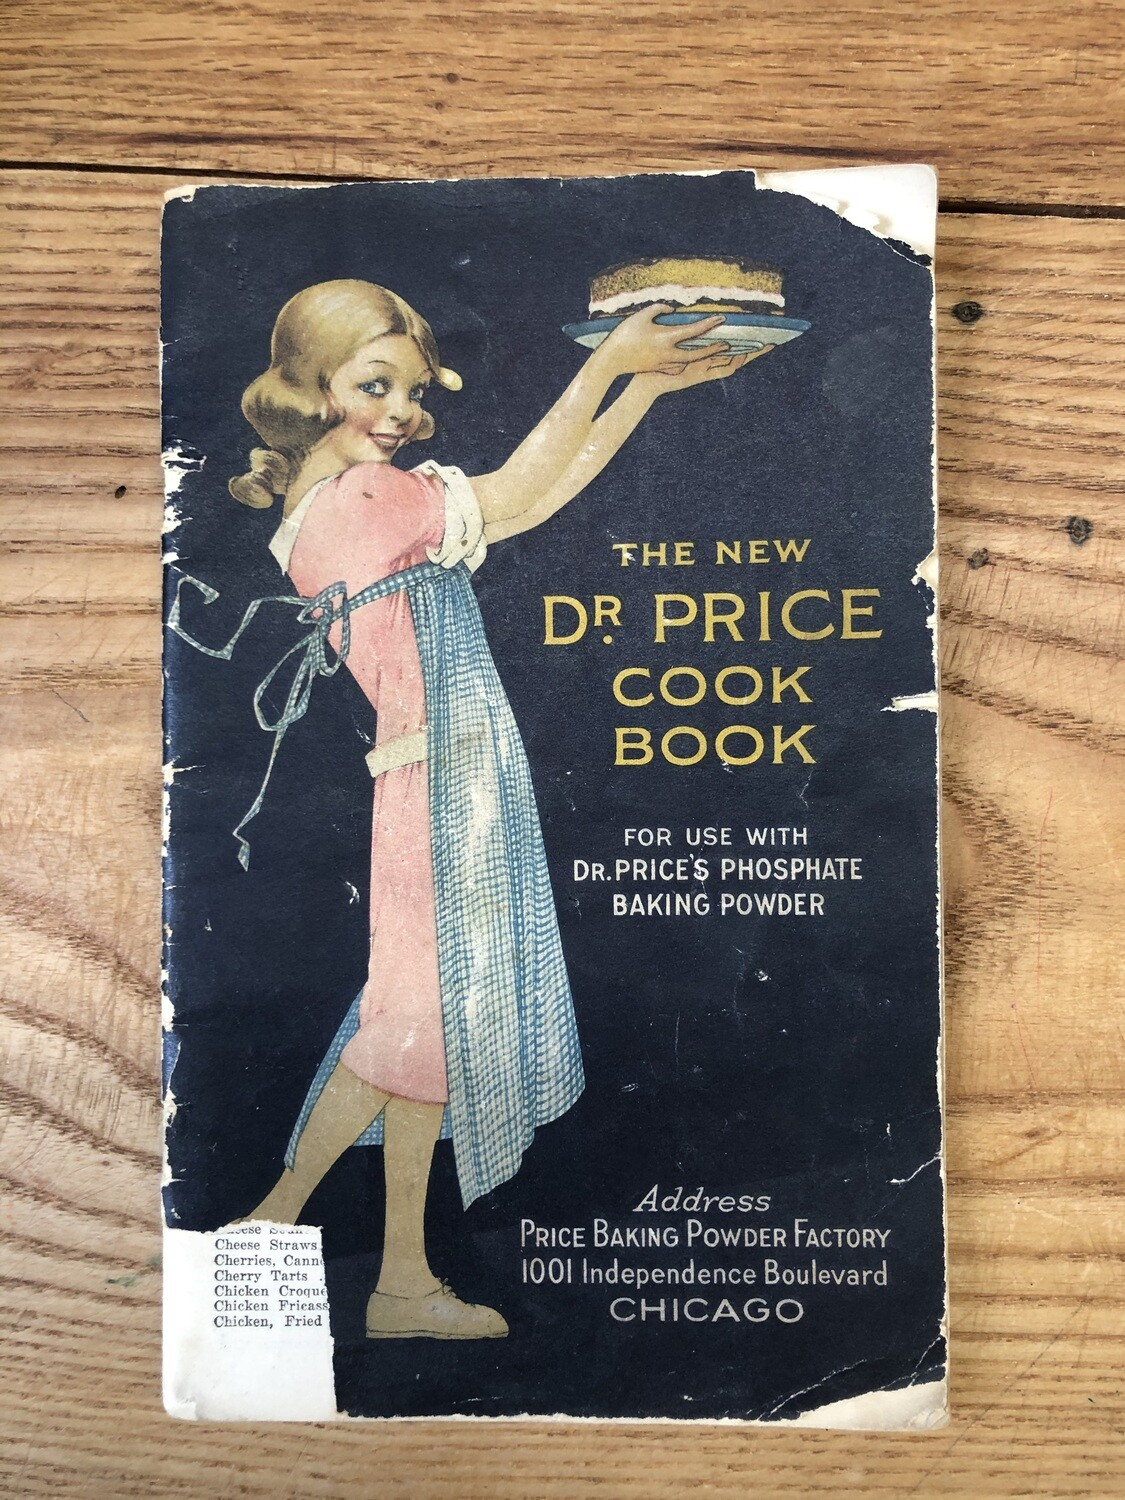 The New Dr. Price Cook Book